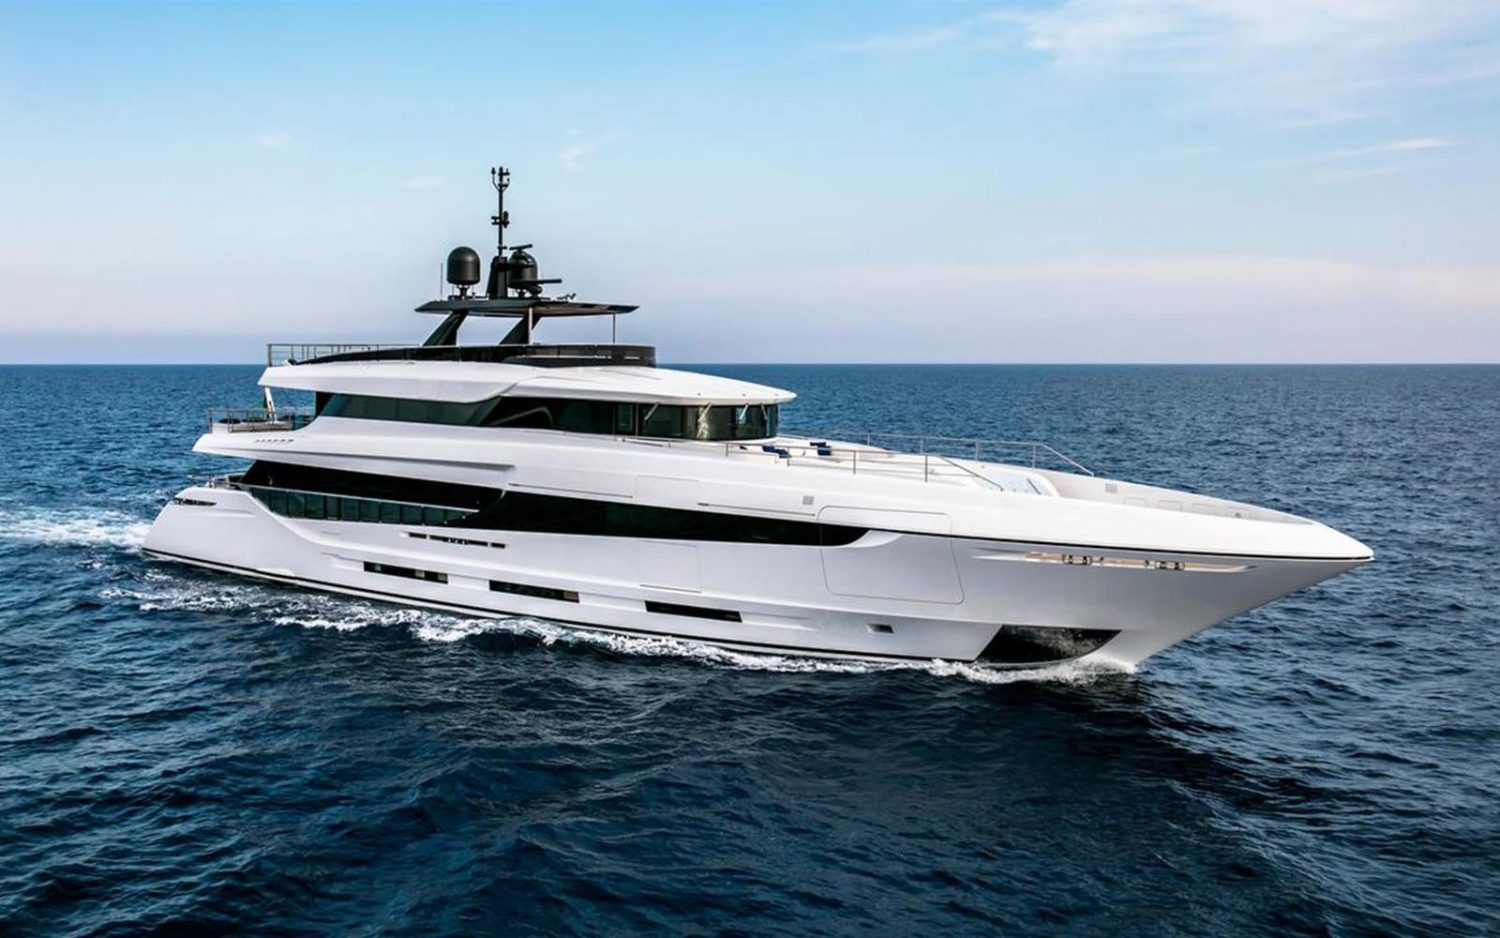 Get To Know 2020's Fort Lauderdale International Boat Show fort lauderdale international boat show Get To Know 2020's Fort Lauderdale International Boat Show flibs 2020 3 scaled